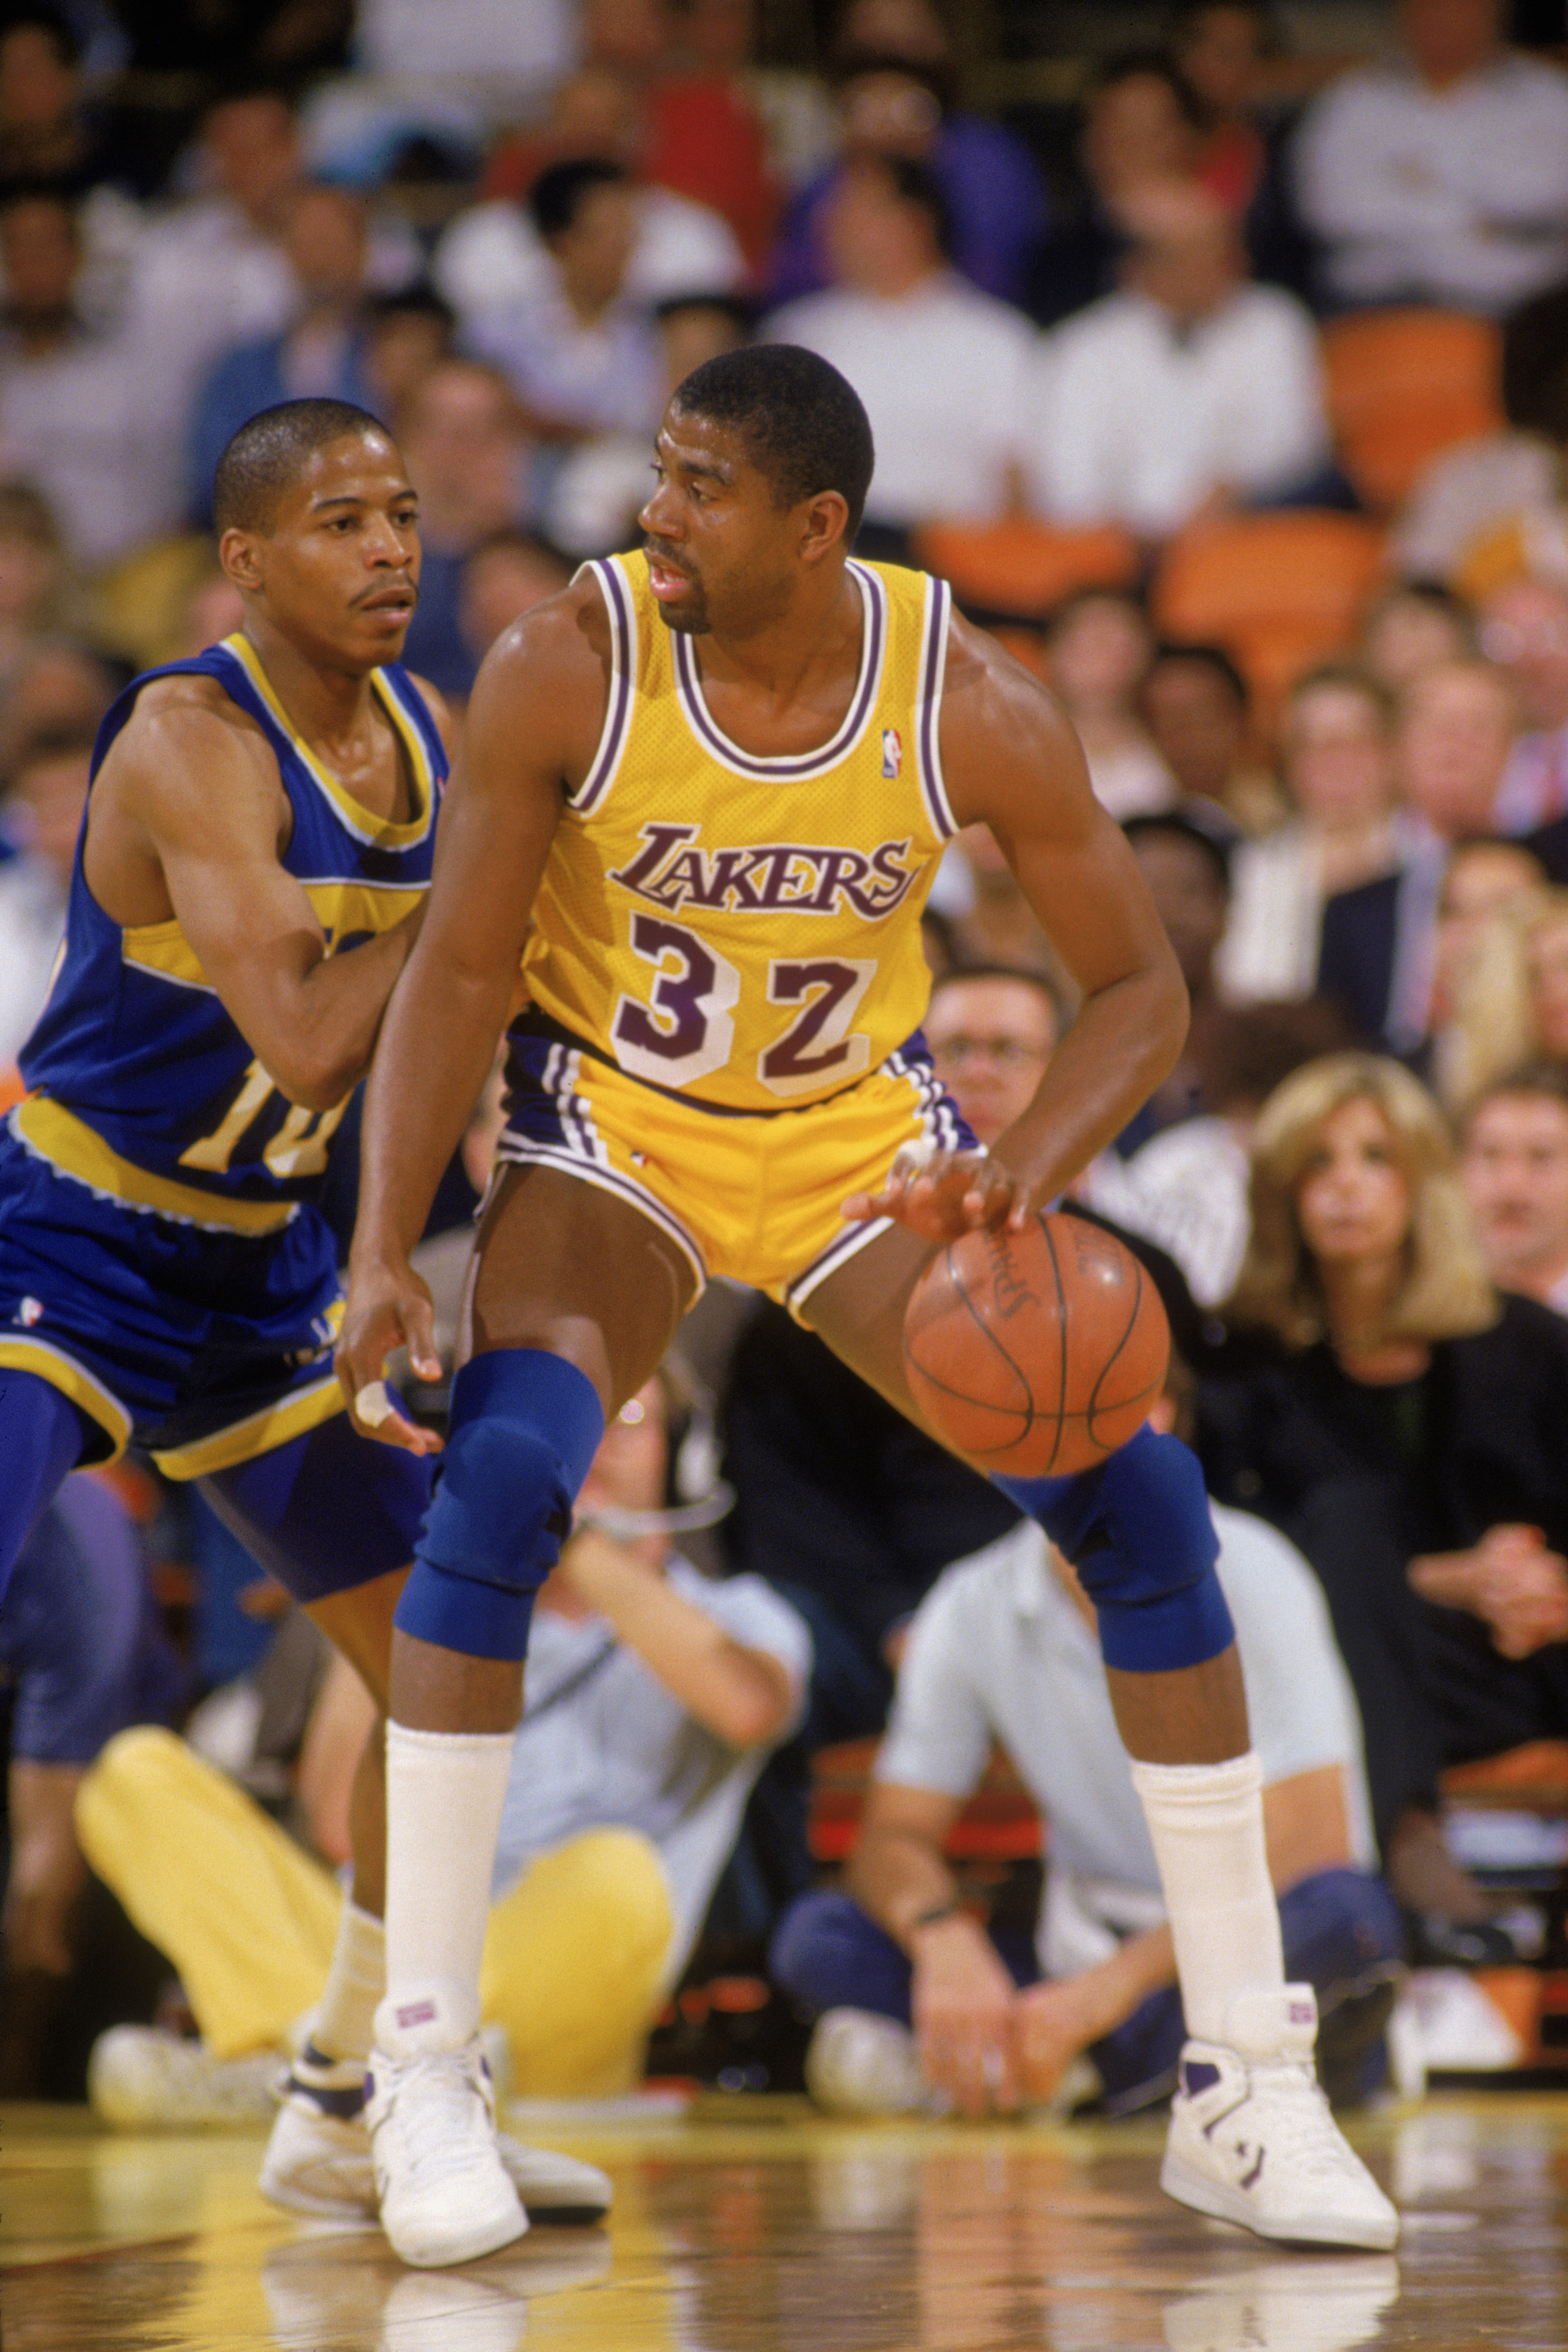 LOS ANGELES - 1987:  Magic Johnson #32 of the Los Angeles Lakers dribbles the ball in the post during an NBA game against the Golden State Warriors at the Great Western Forum in Los Angeles, California in 1987. (Photo by: Stephen Dunn/Getty Images)